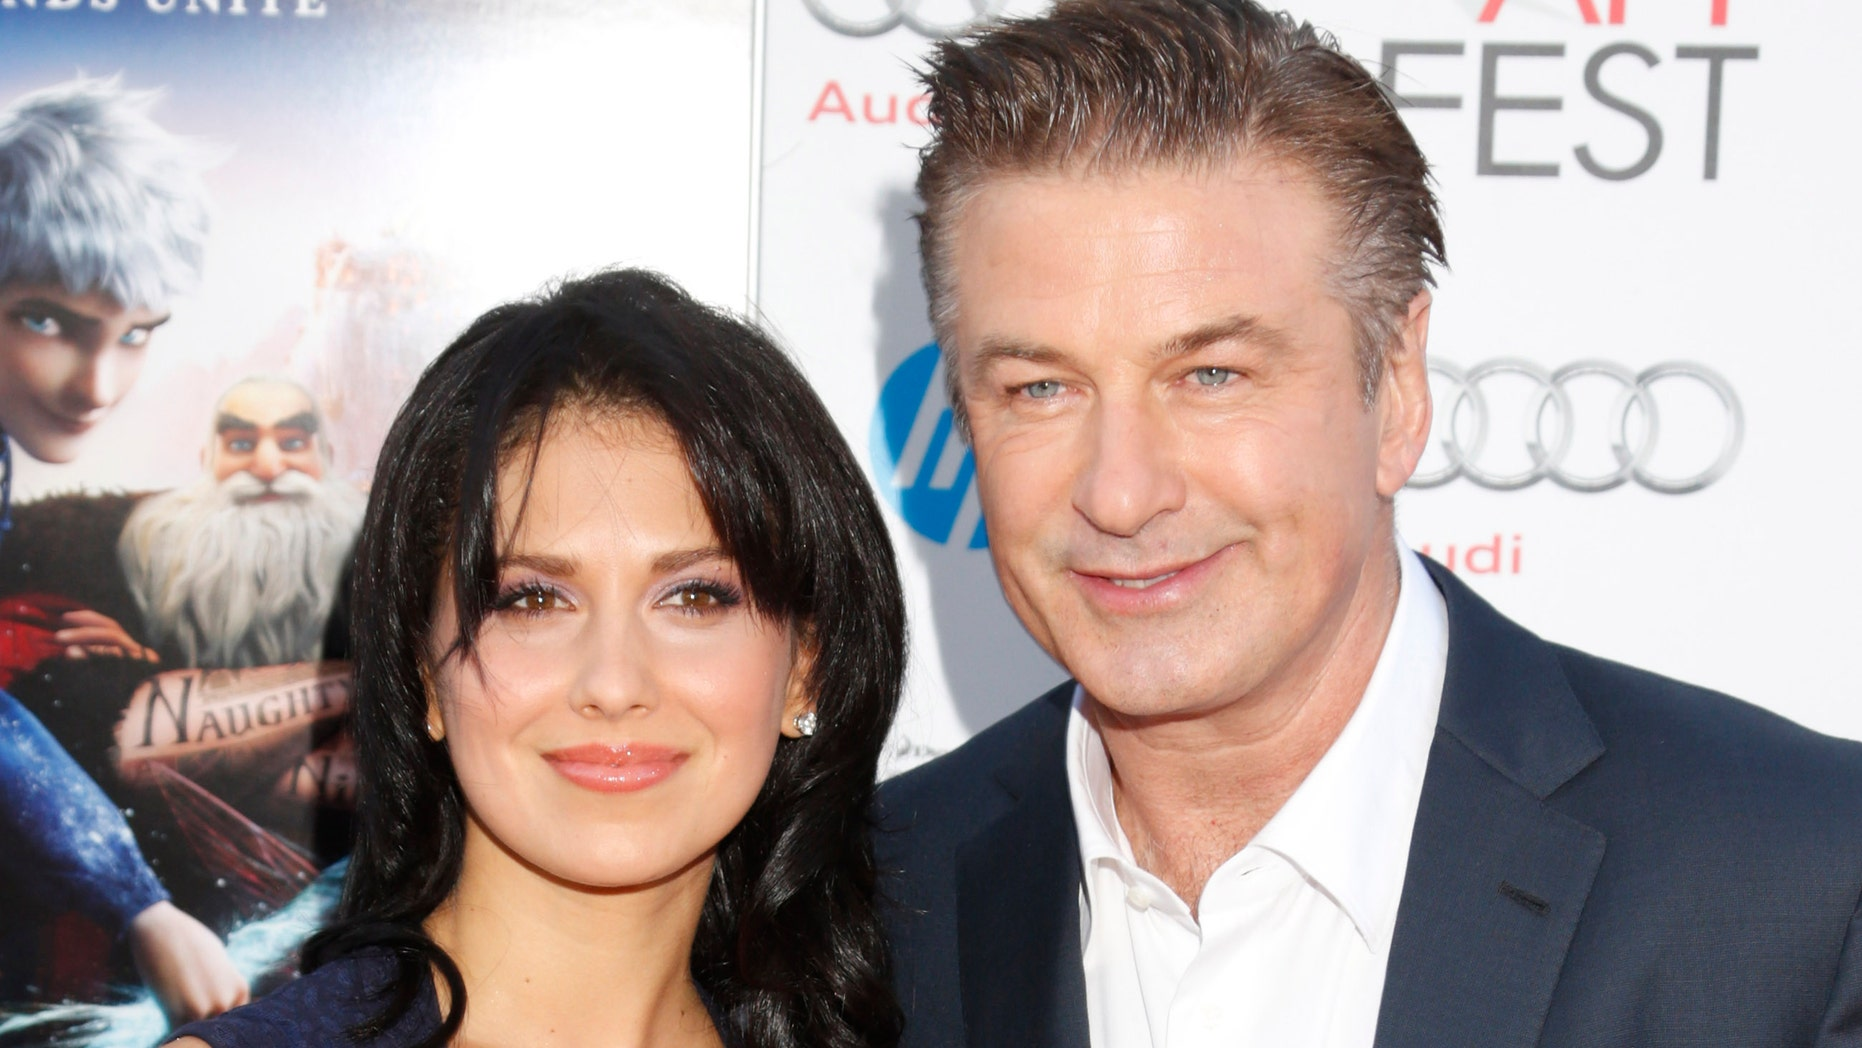 "FILE - This Nov. 4, 2012 file photo shows actor Alec Baldwin, right, and his wife Hilaria Thomas at the ""Rise Of The Guardians'"" special screening during the 2012 AFI FEST at Grauman's Chinese Theatre in the Hollywood section of Los Angeles. A possible plea deal in New York for Genevieve Sabourin, a Canadian actress accused of stalking Alec Baldwin has been postponed. Police originally arrested Sabourin after authorities said she had implored Baldwin to see and to marry her in emails sent only days after he became engaged to yoga instructor Hilaria Thomas. She later spent a night in jail after she was accused of sending Thomas a Twitter message. (Photo by Todd Williamson/Invision/AP, file)"